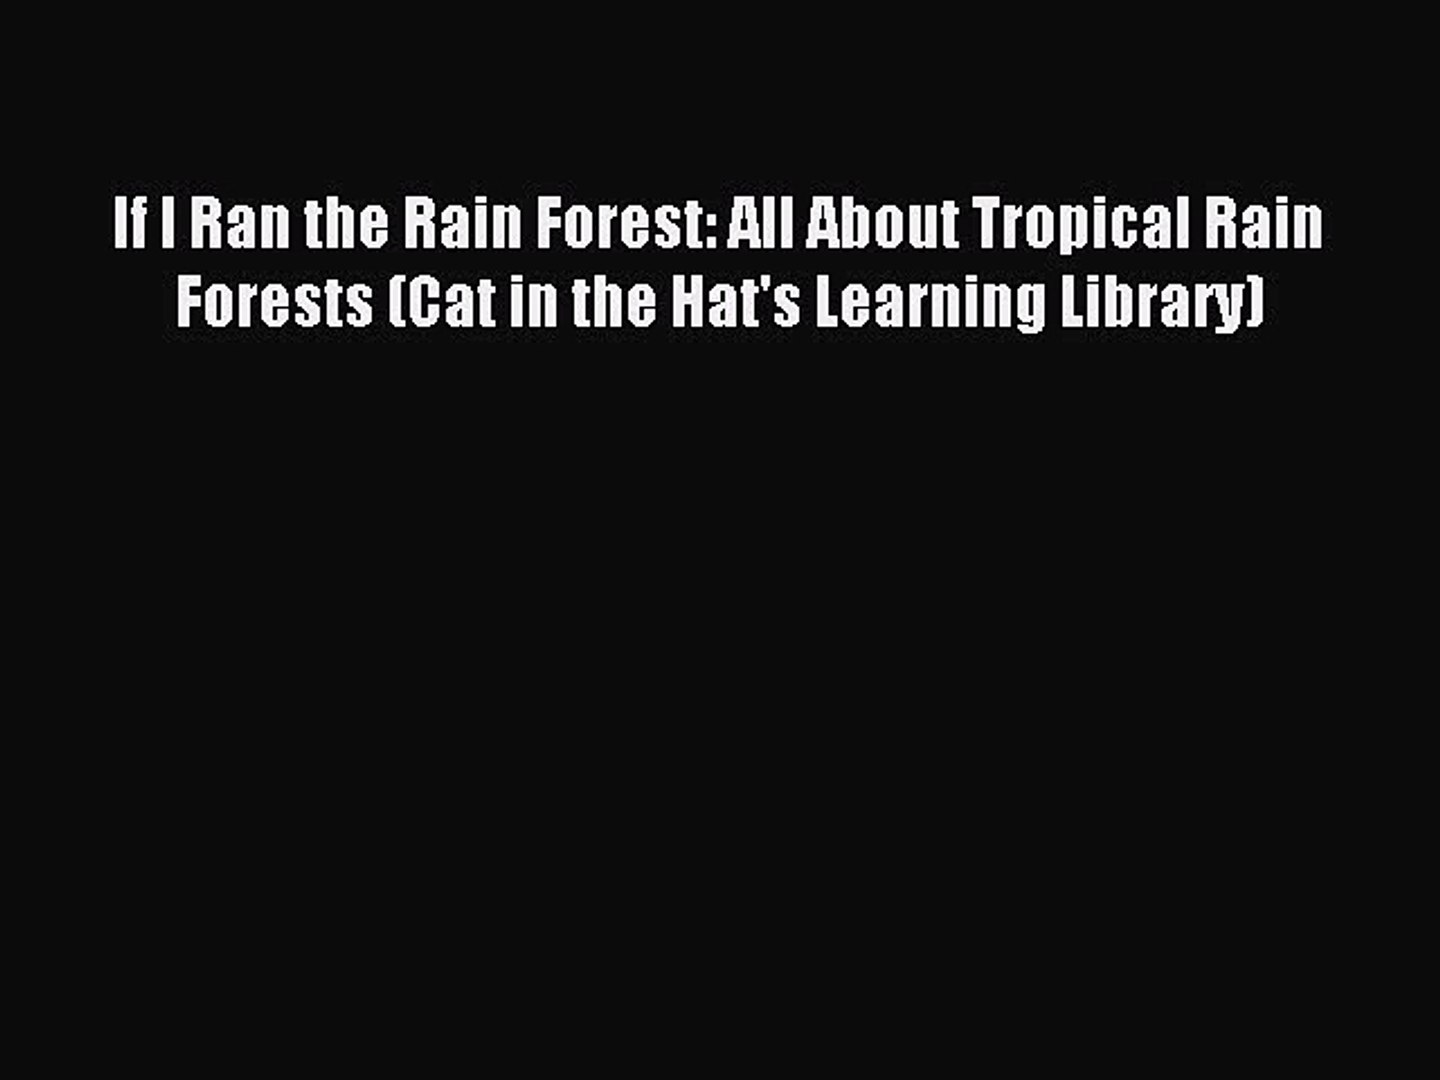 If I Ran the Rain Forest All About Tropical Rain Forests